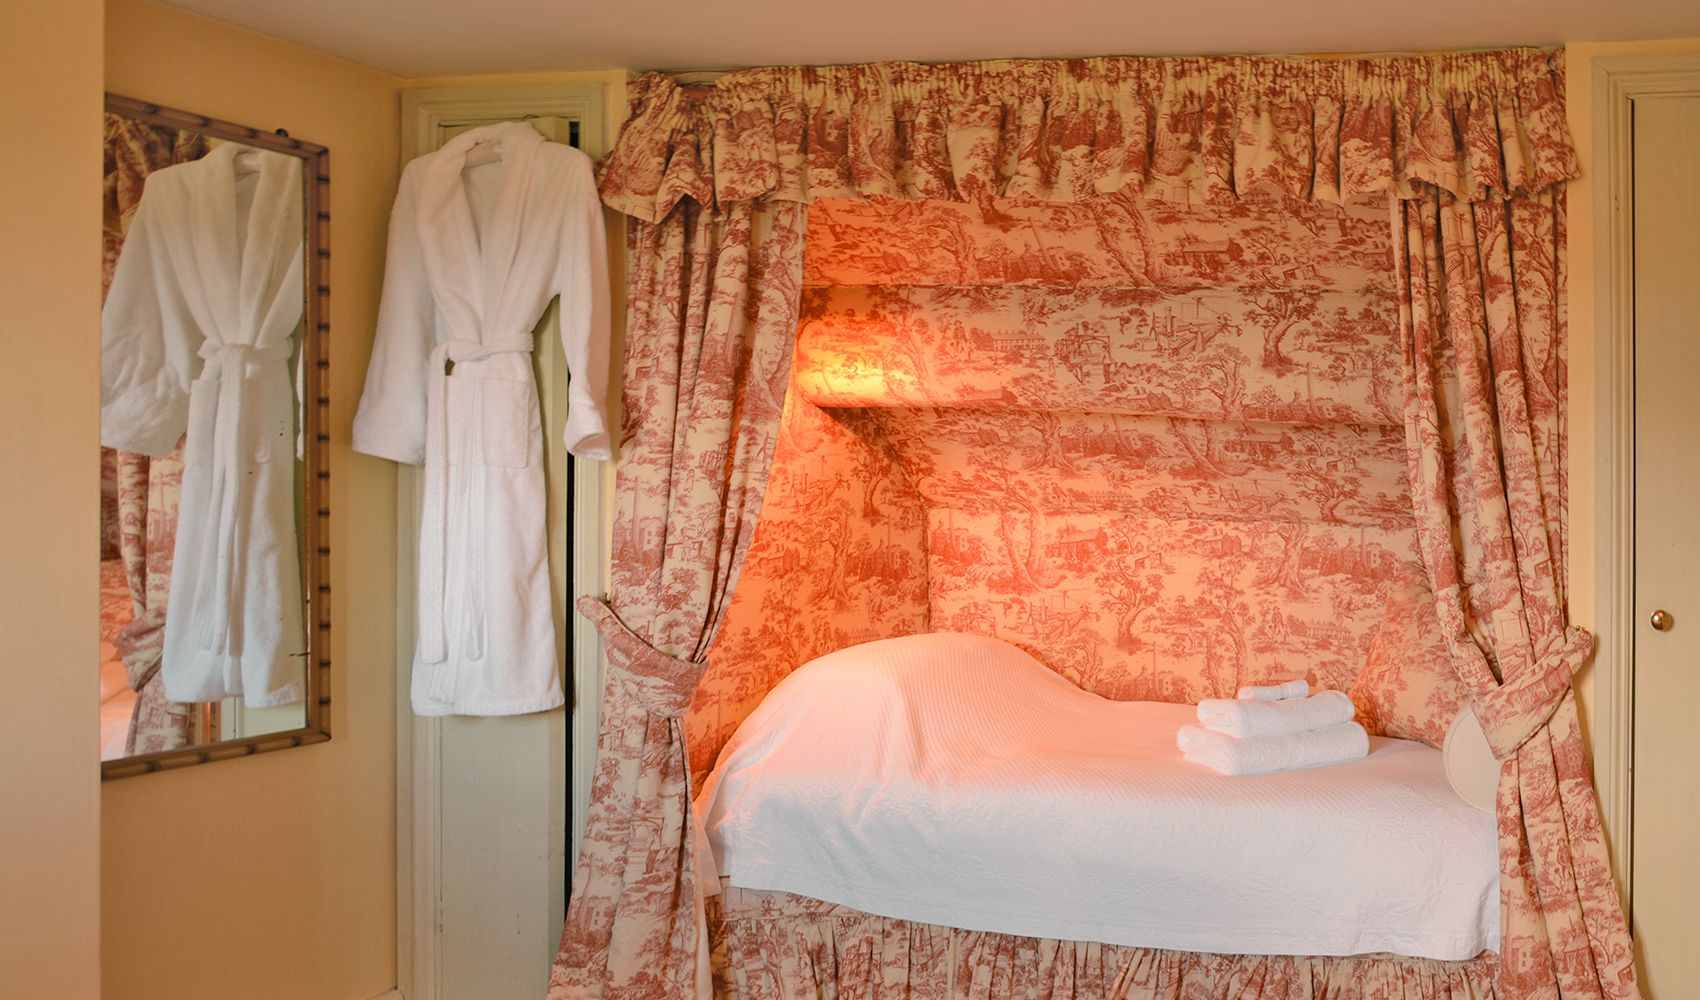 Second floor: Second twin bed in the twin bedroom in a curtained alcove